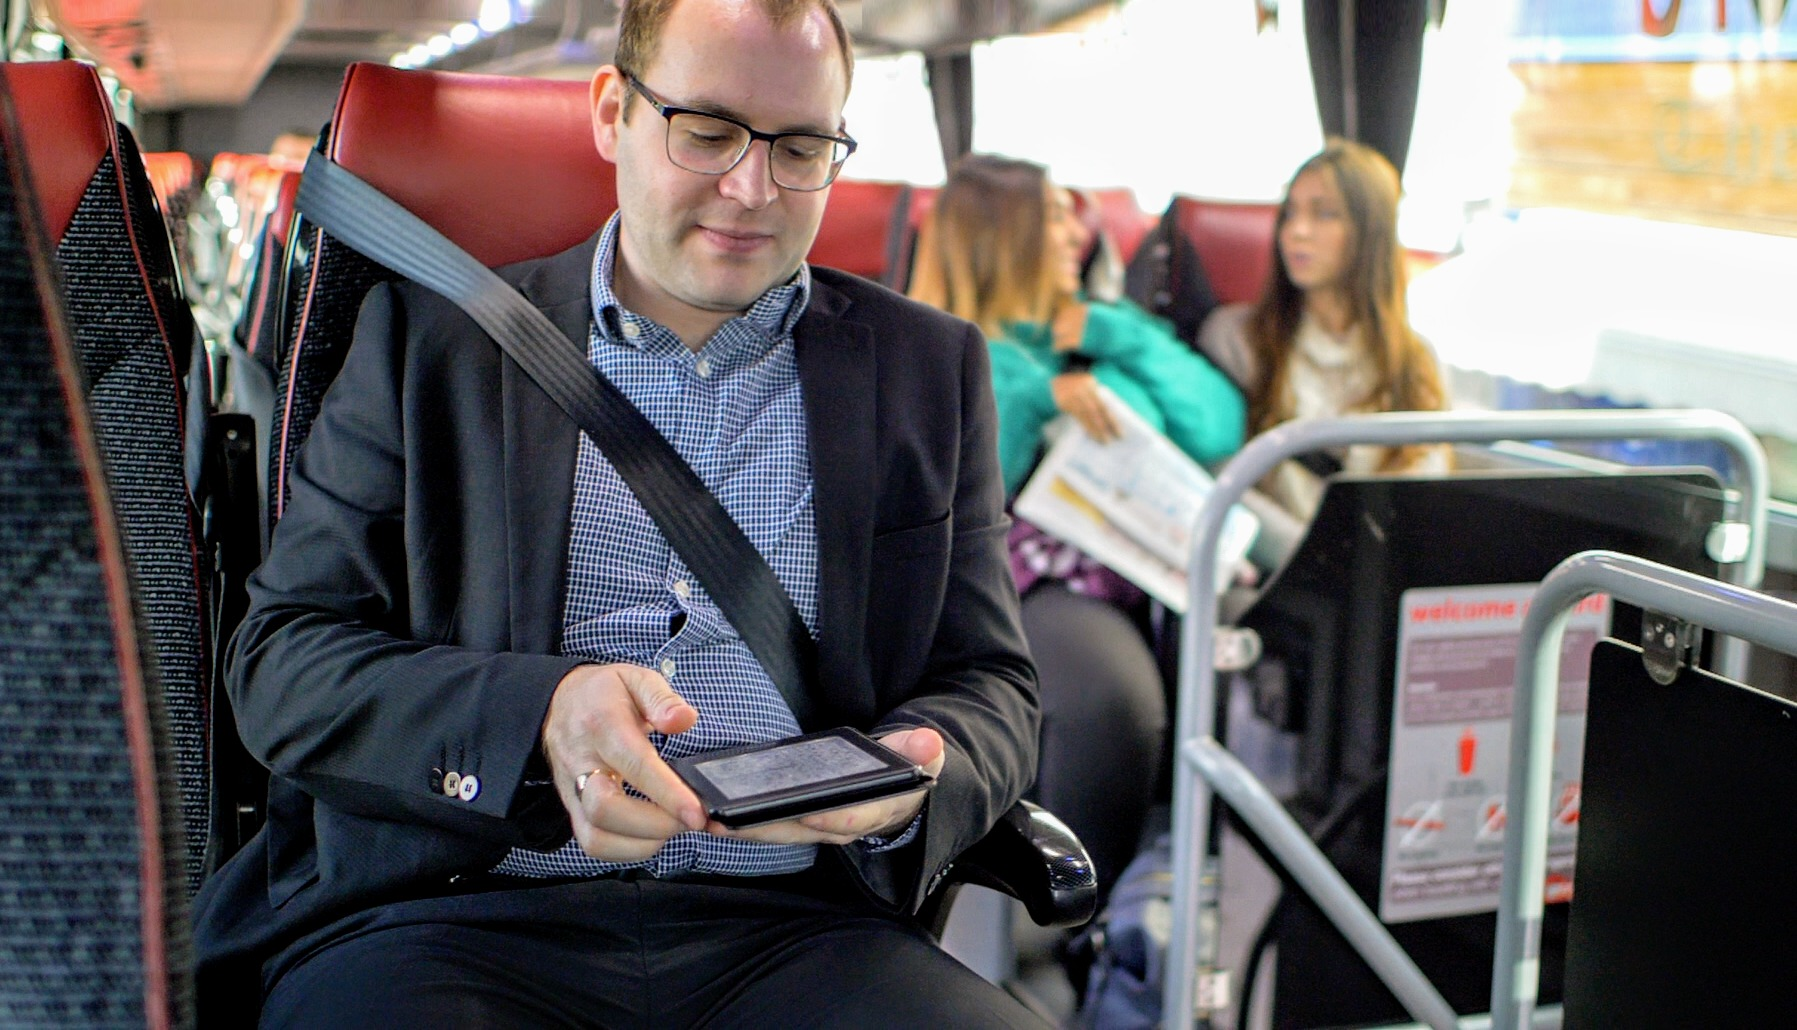 YouTube now available on Oxford bus wi-fi